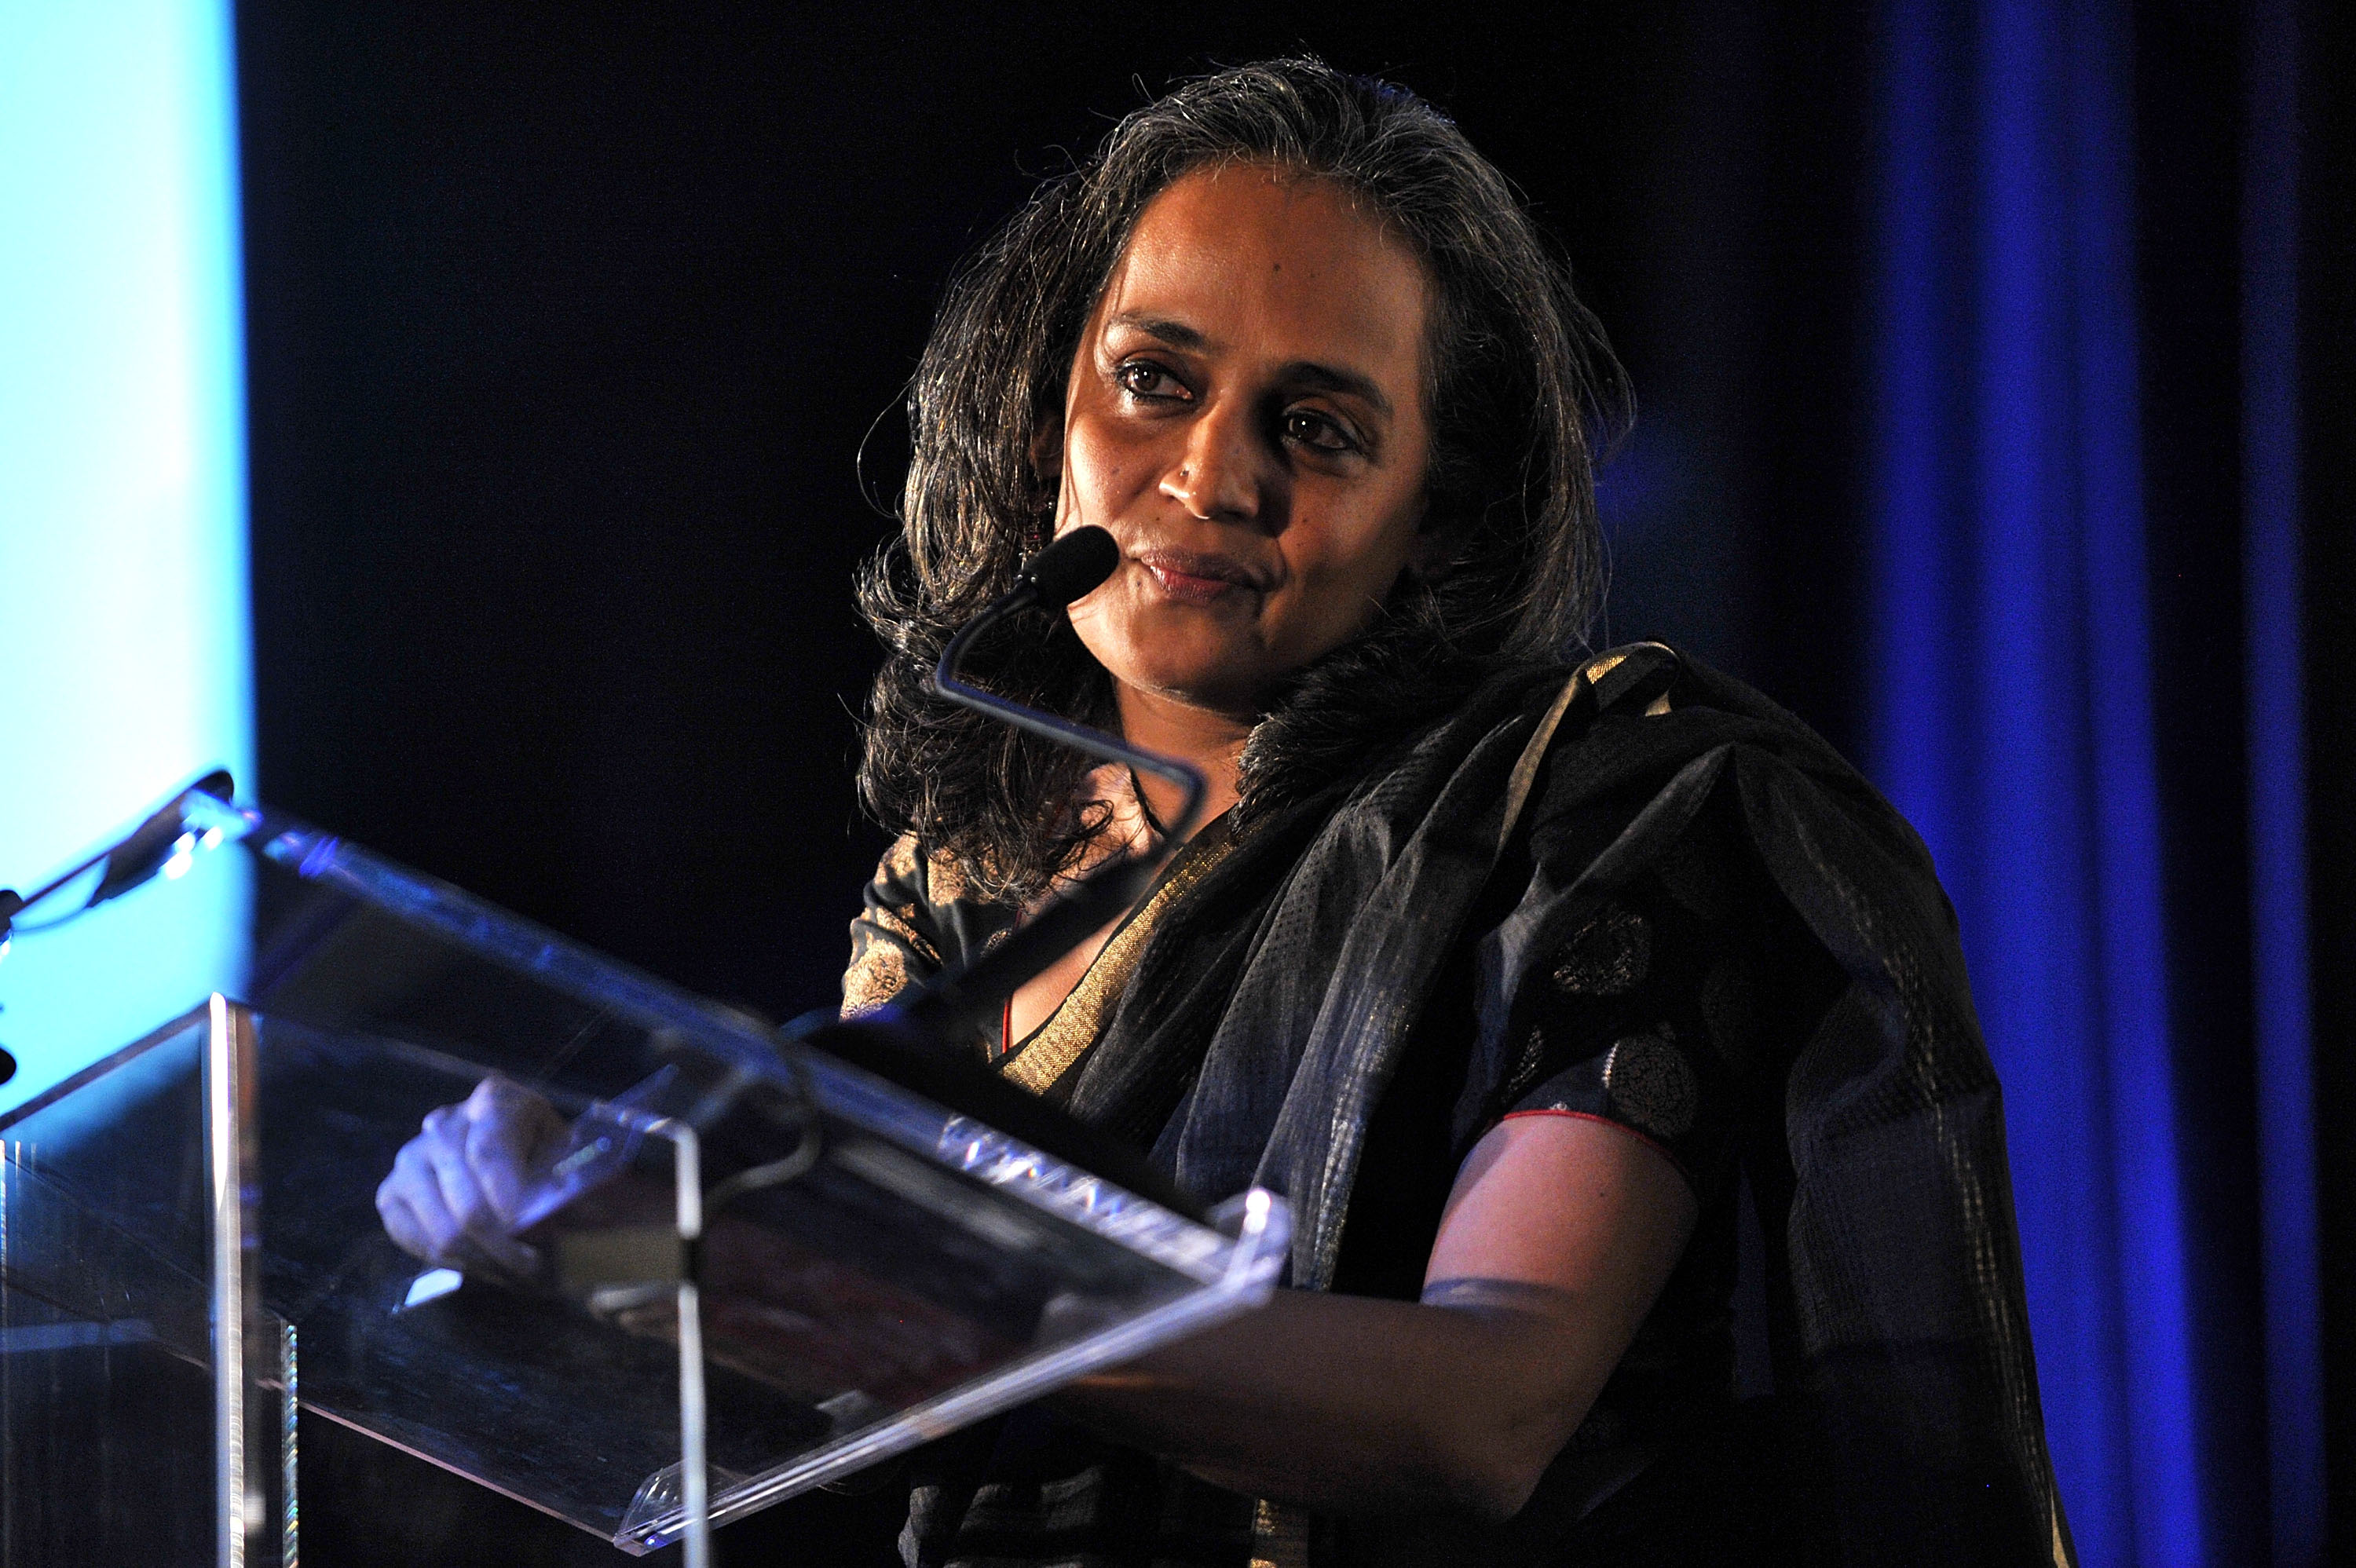 Author Arundhati Roy speaks at the 3rd Annual Norman Mailer Center Gala at the Mandarin Oriental Hotel on November 8, 2011 in New York City.